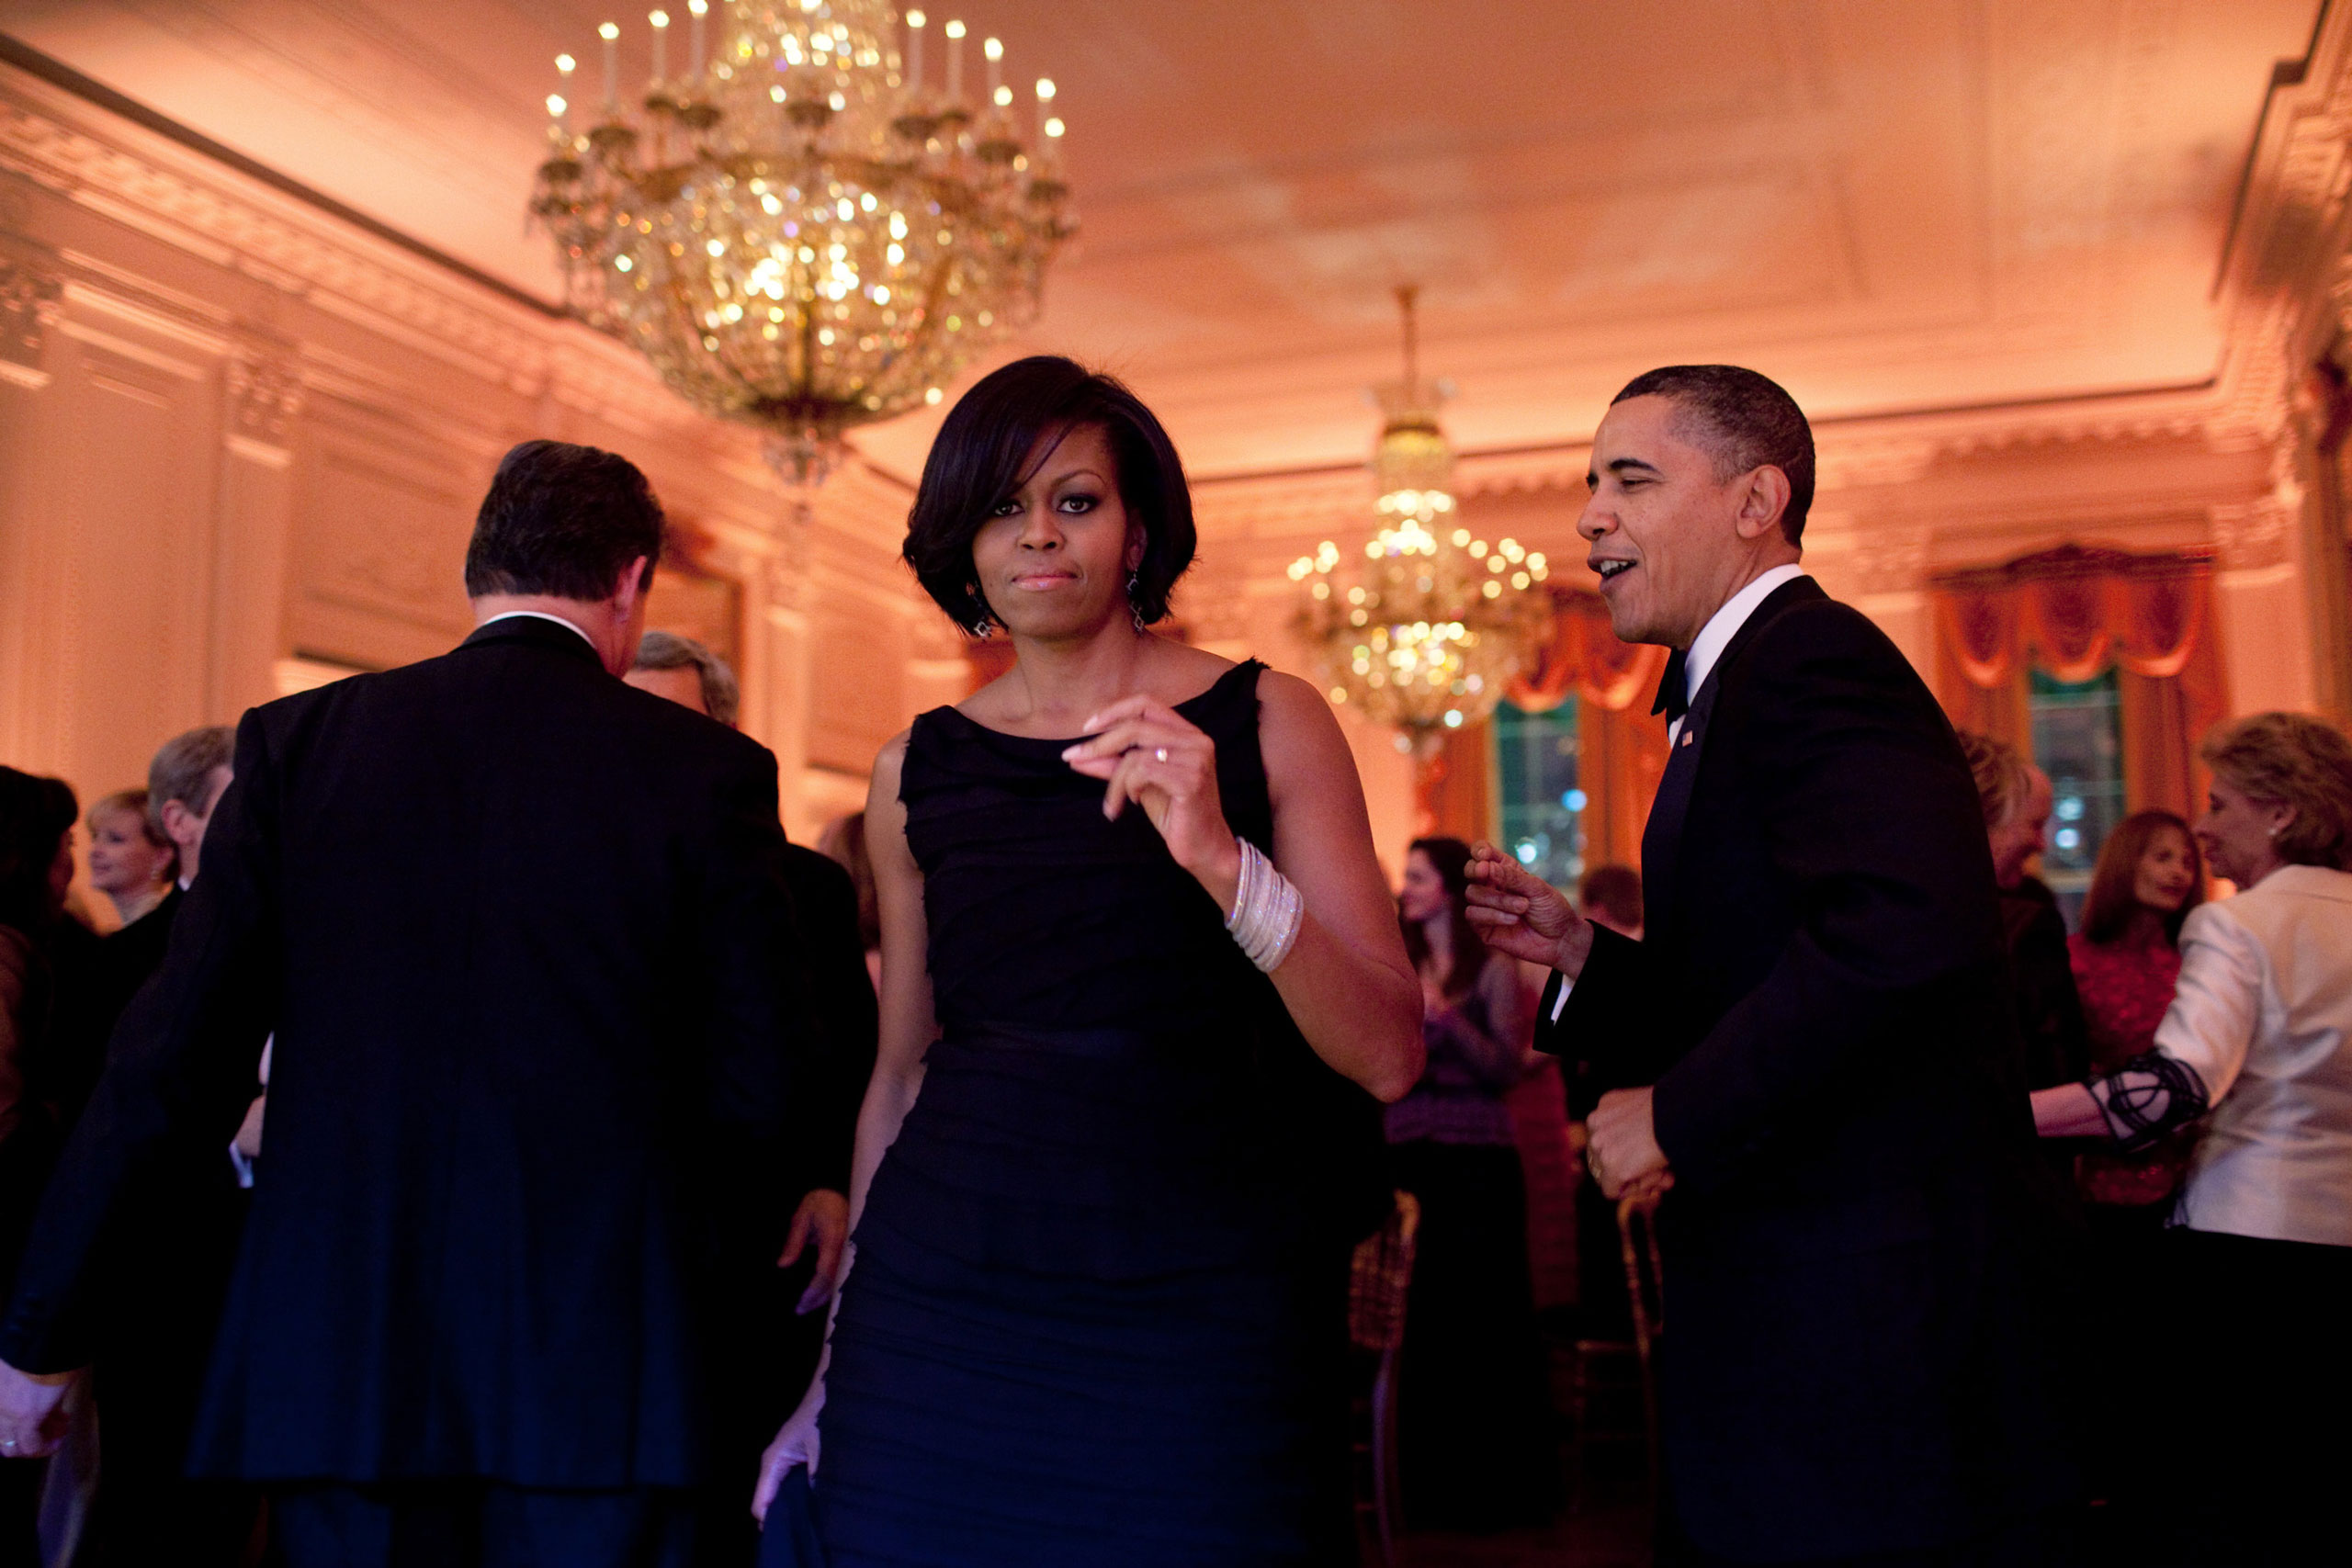 The President and First Lady were dancing along to the music of the Harry Connick, Jr., Big Band at the Governors Ball. Mrs. Obama turned towards me and, for one split second, looked right at me. Usually I strive to capture moments when the subjects are unaware of the camera. But this an exception where I actually liked that she was looking at me, Feb. 21, 2010.